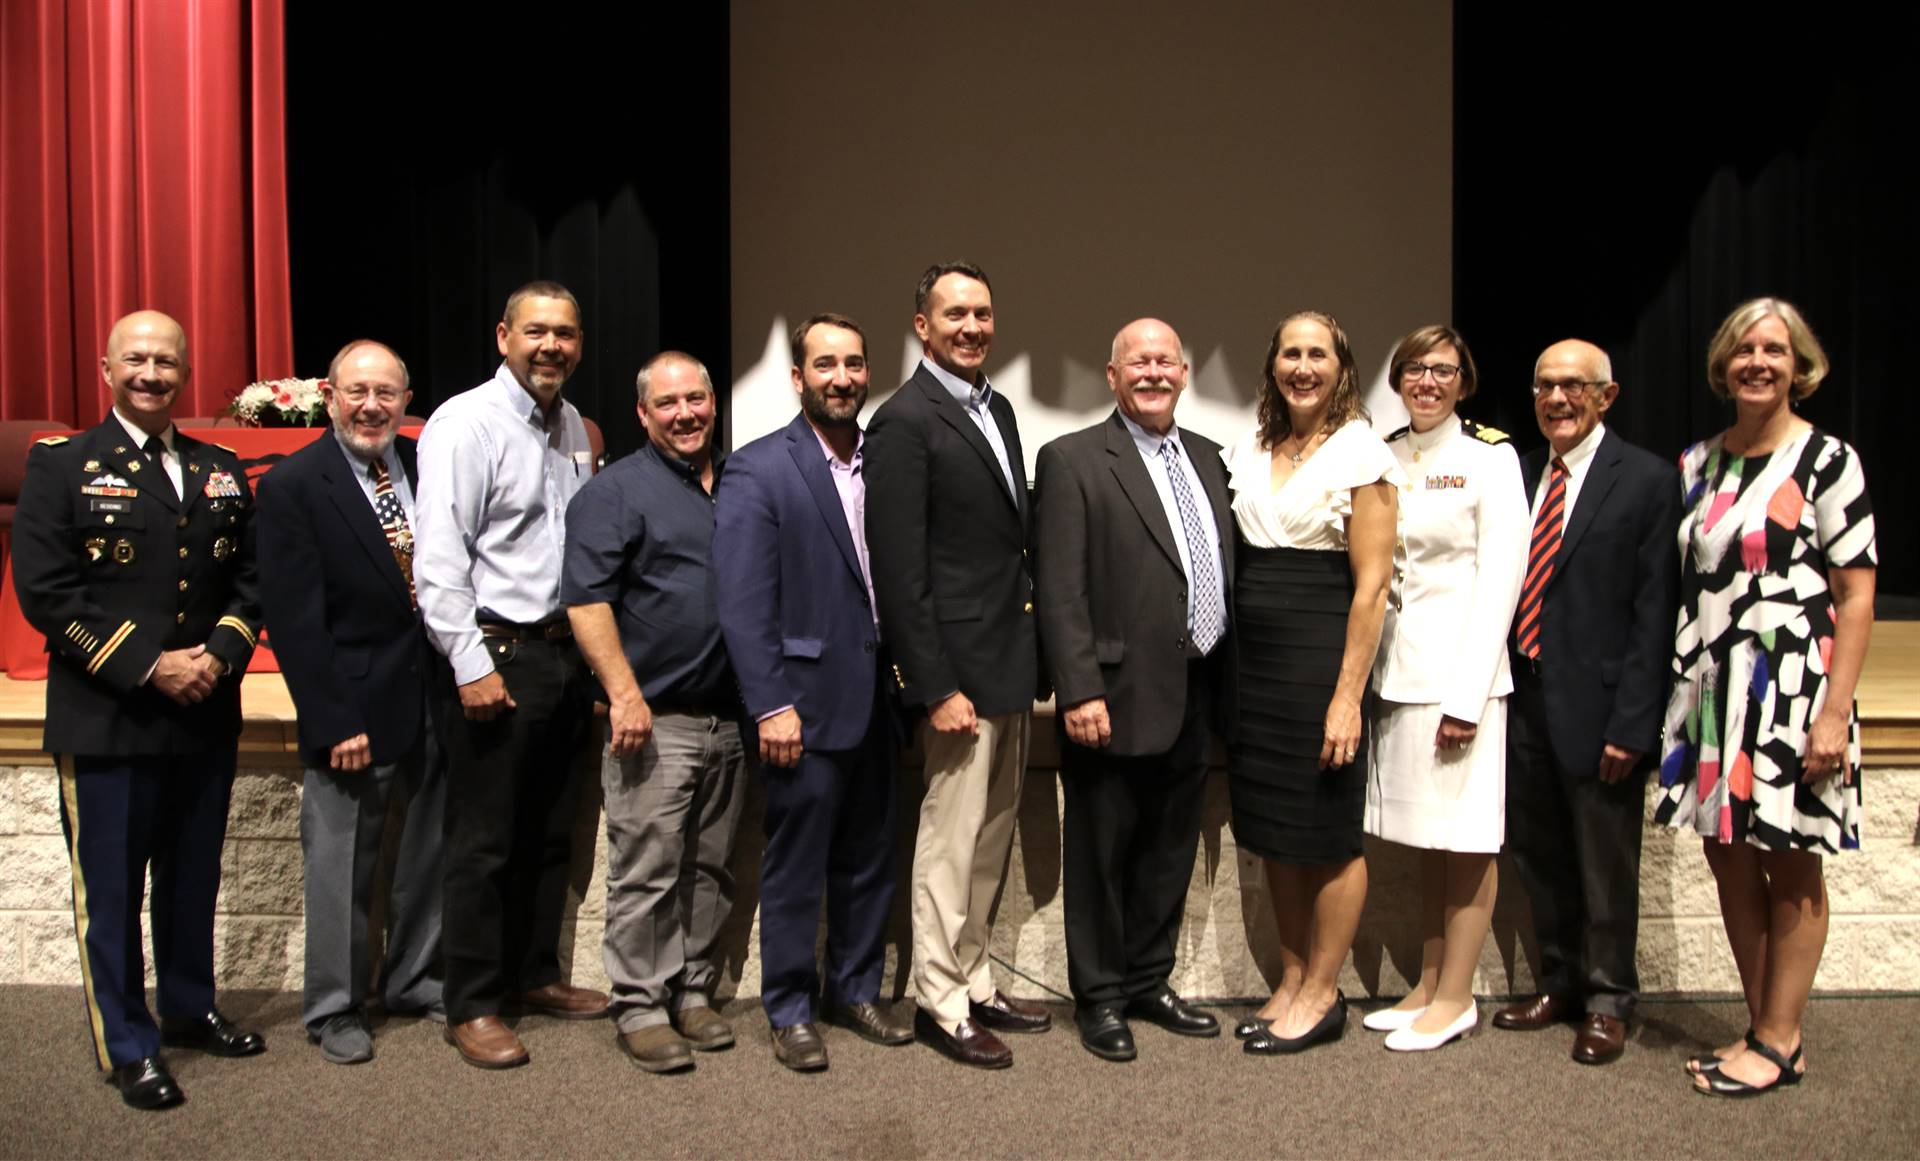 Hall of Distinction honorees and presenters